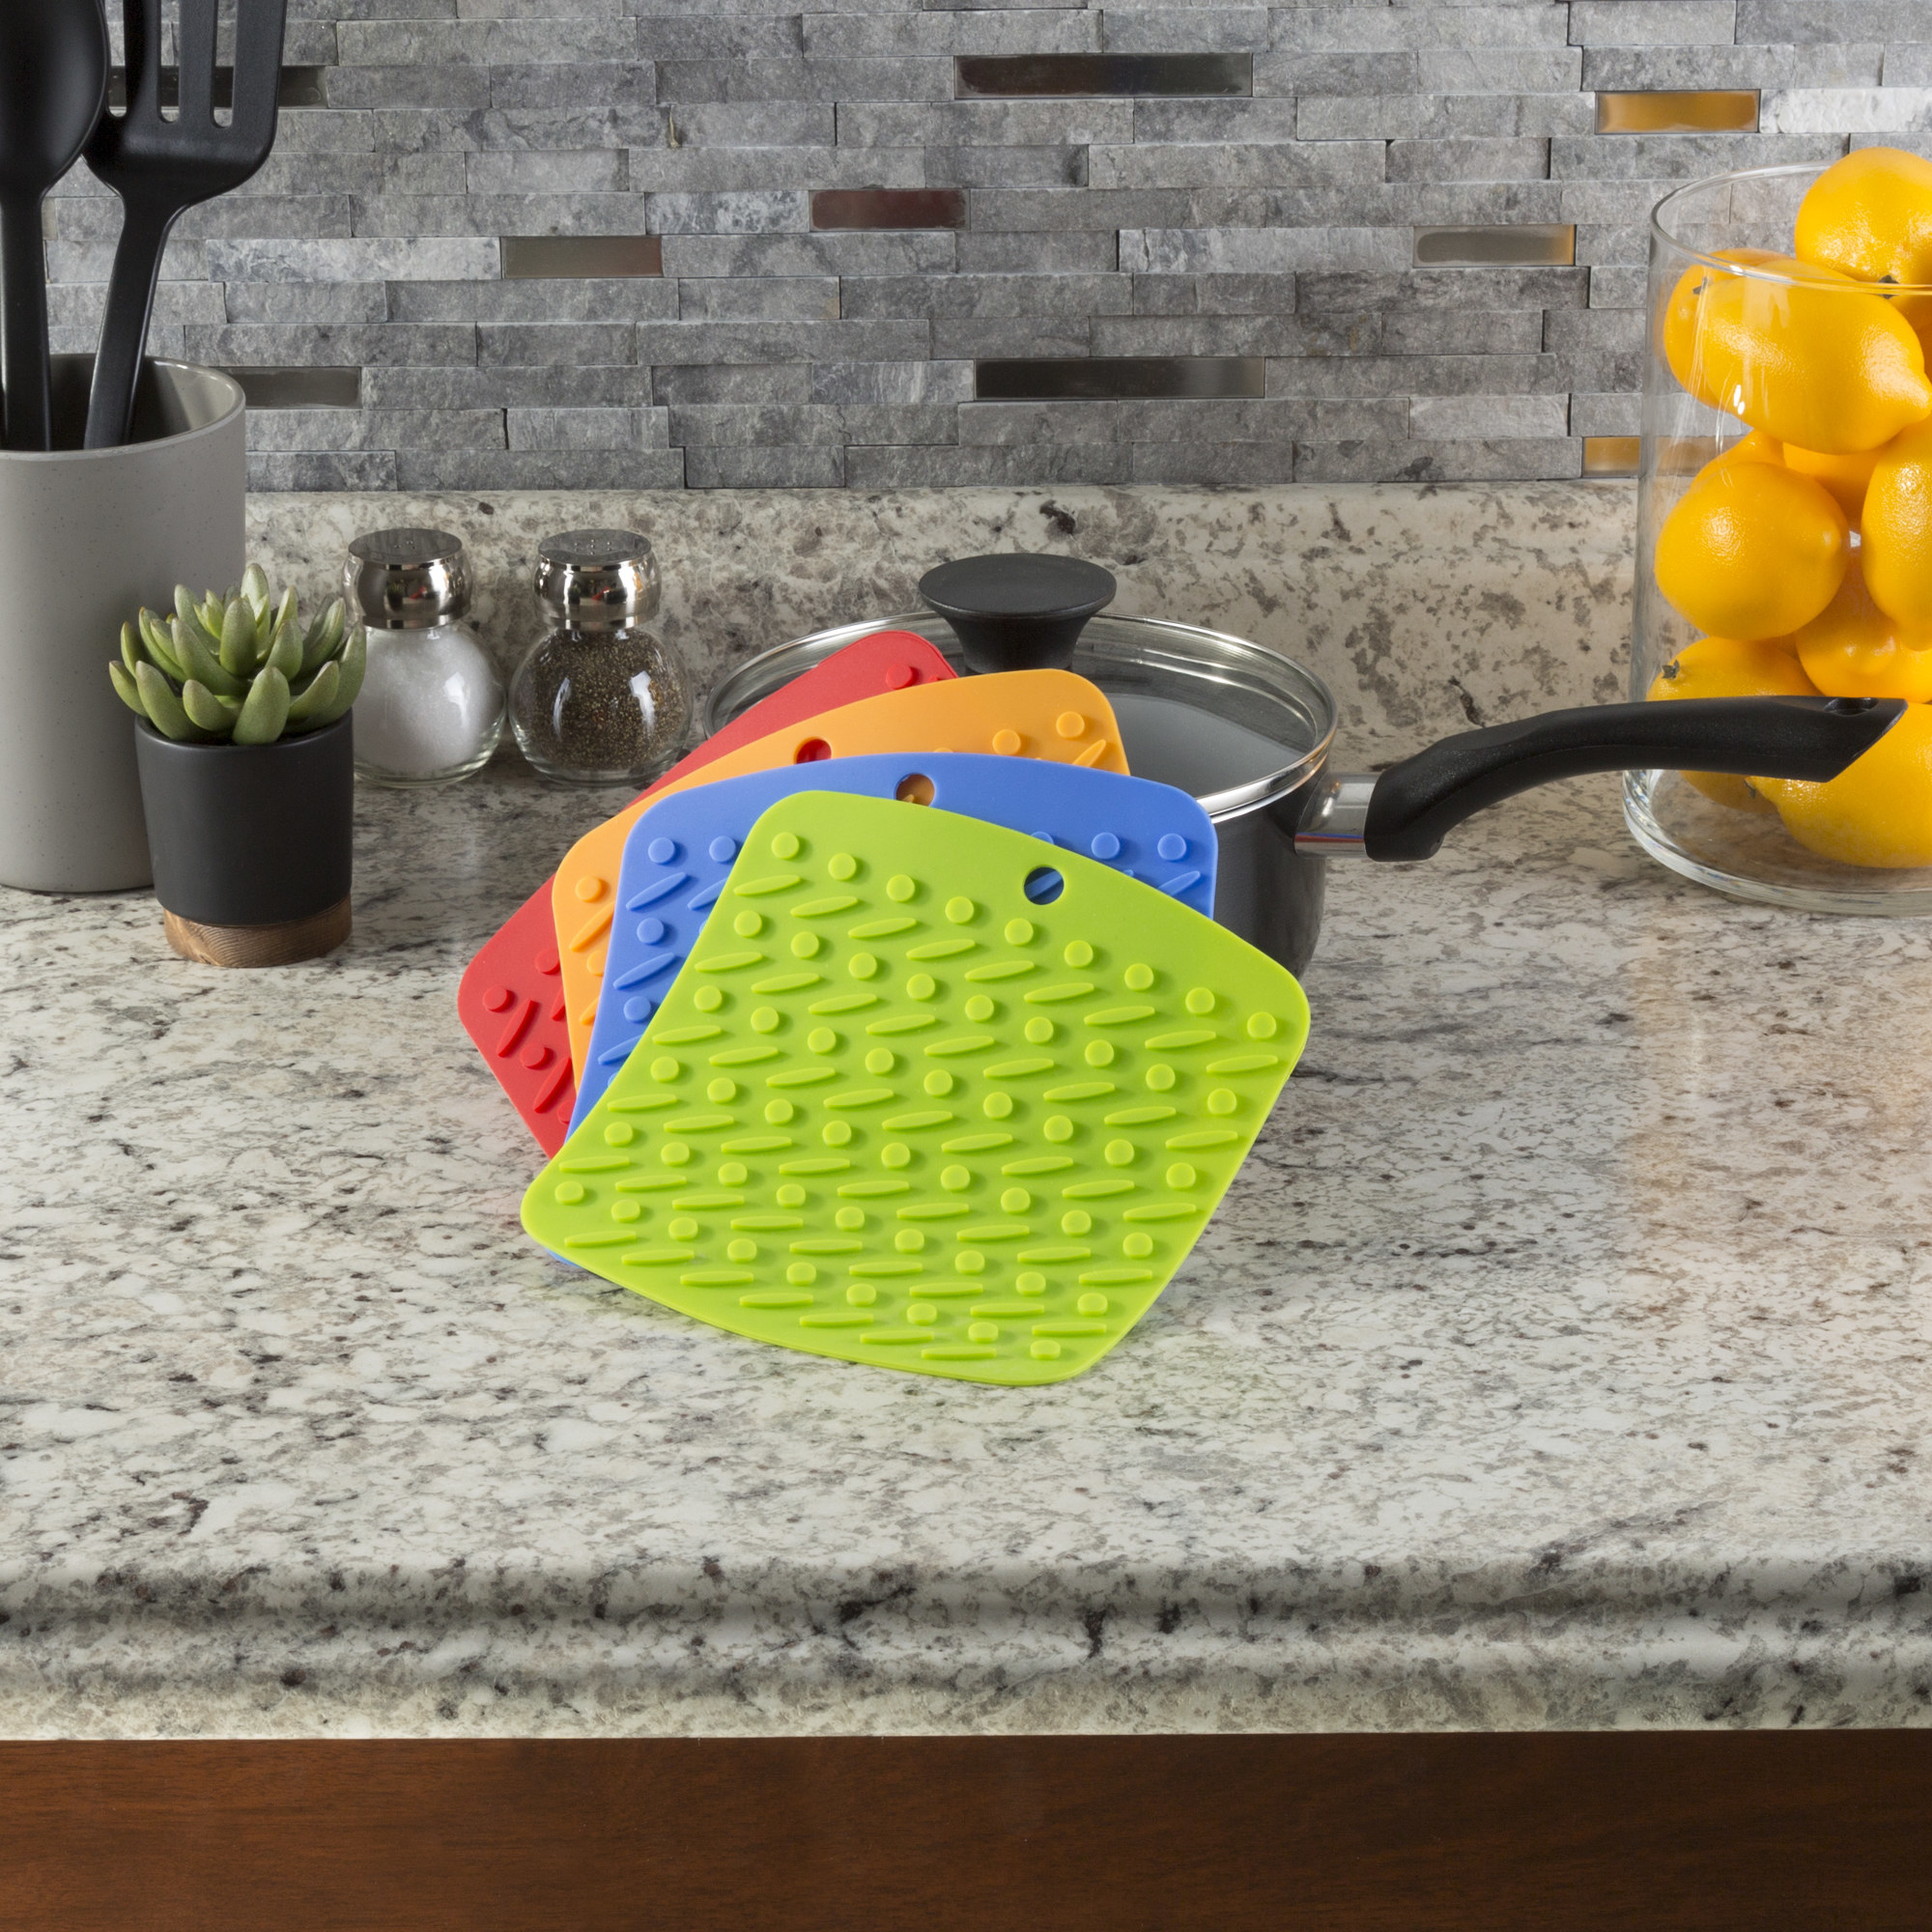 The 4 silicone pot holders on a kitchen counter